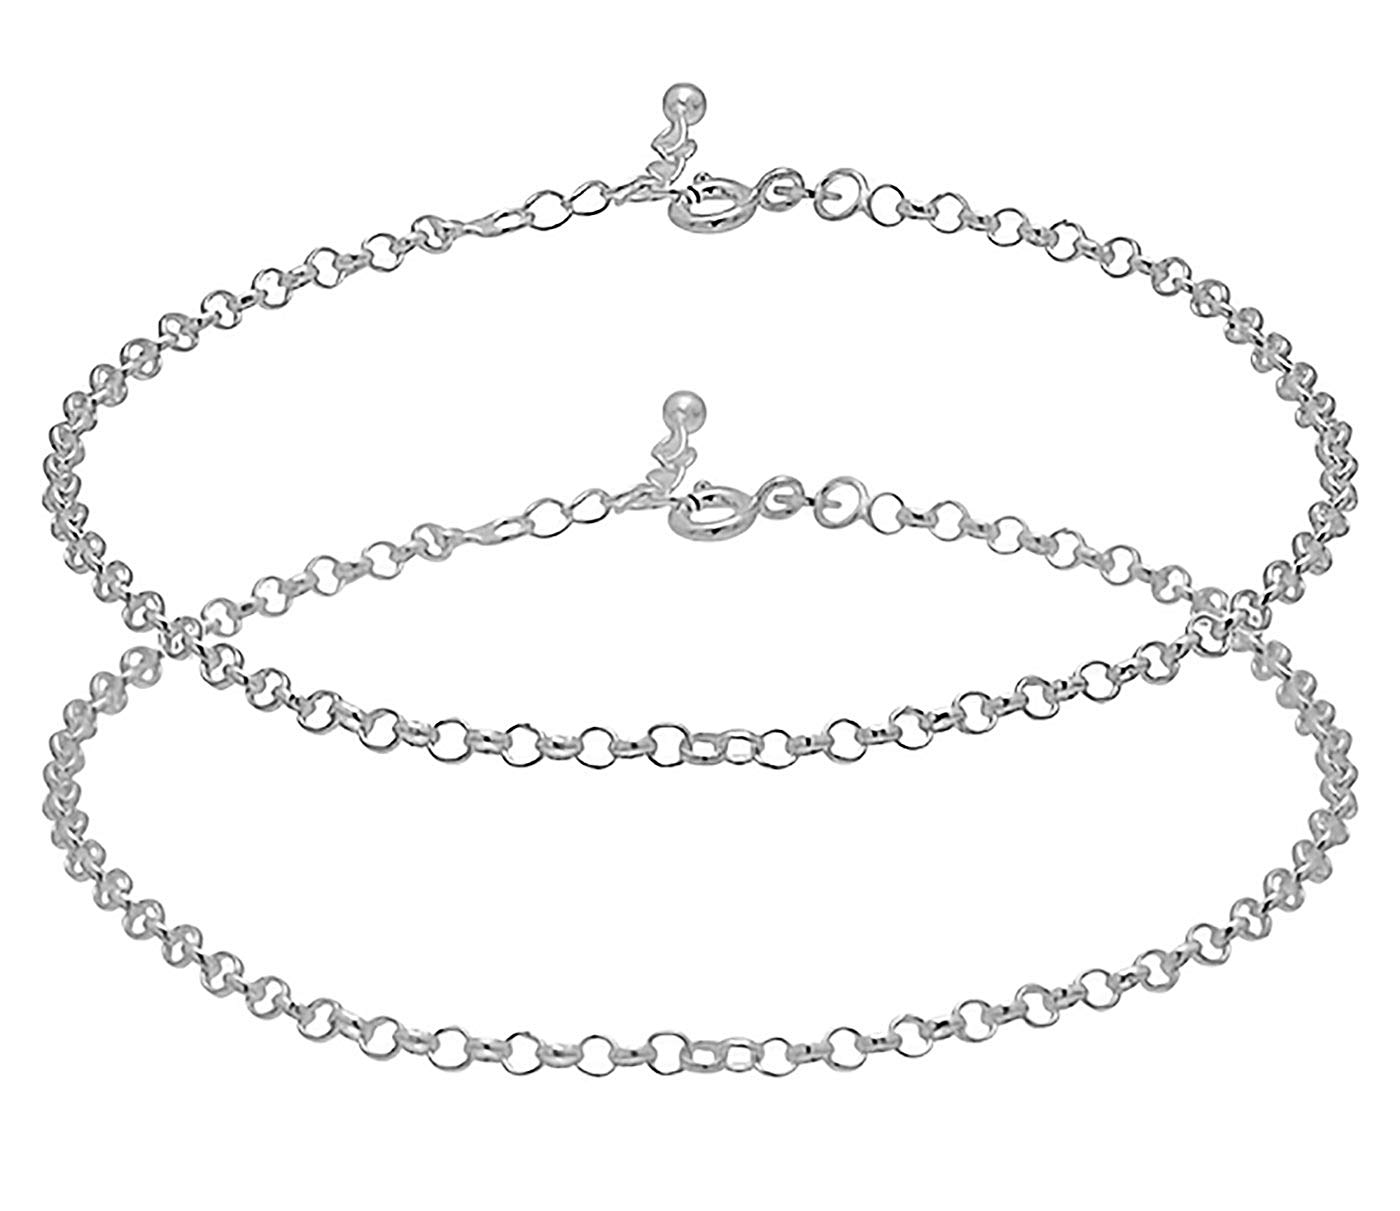 D&D Crafts Chain Design Sterling Silver Anklets for Women, Girls